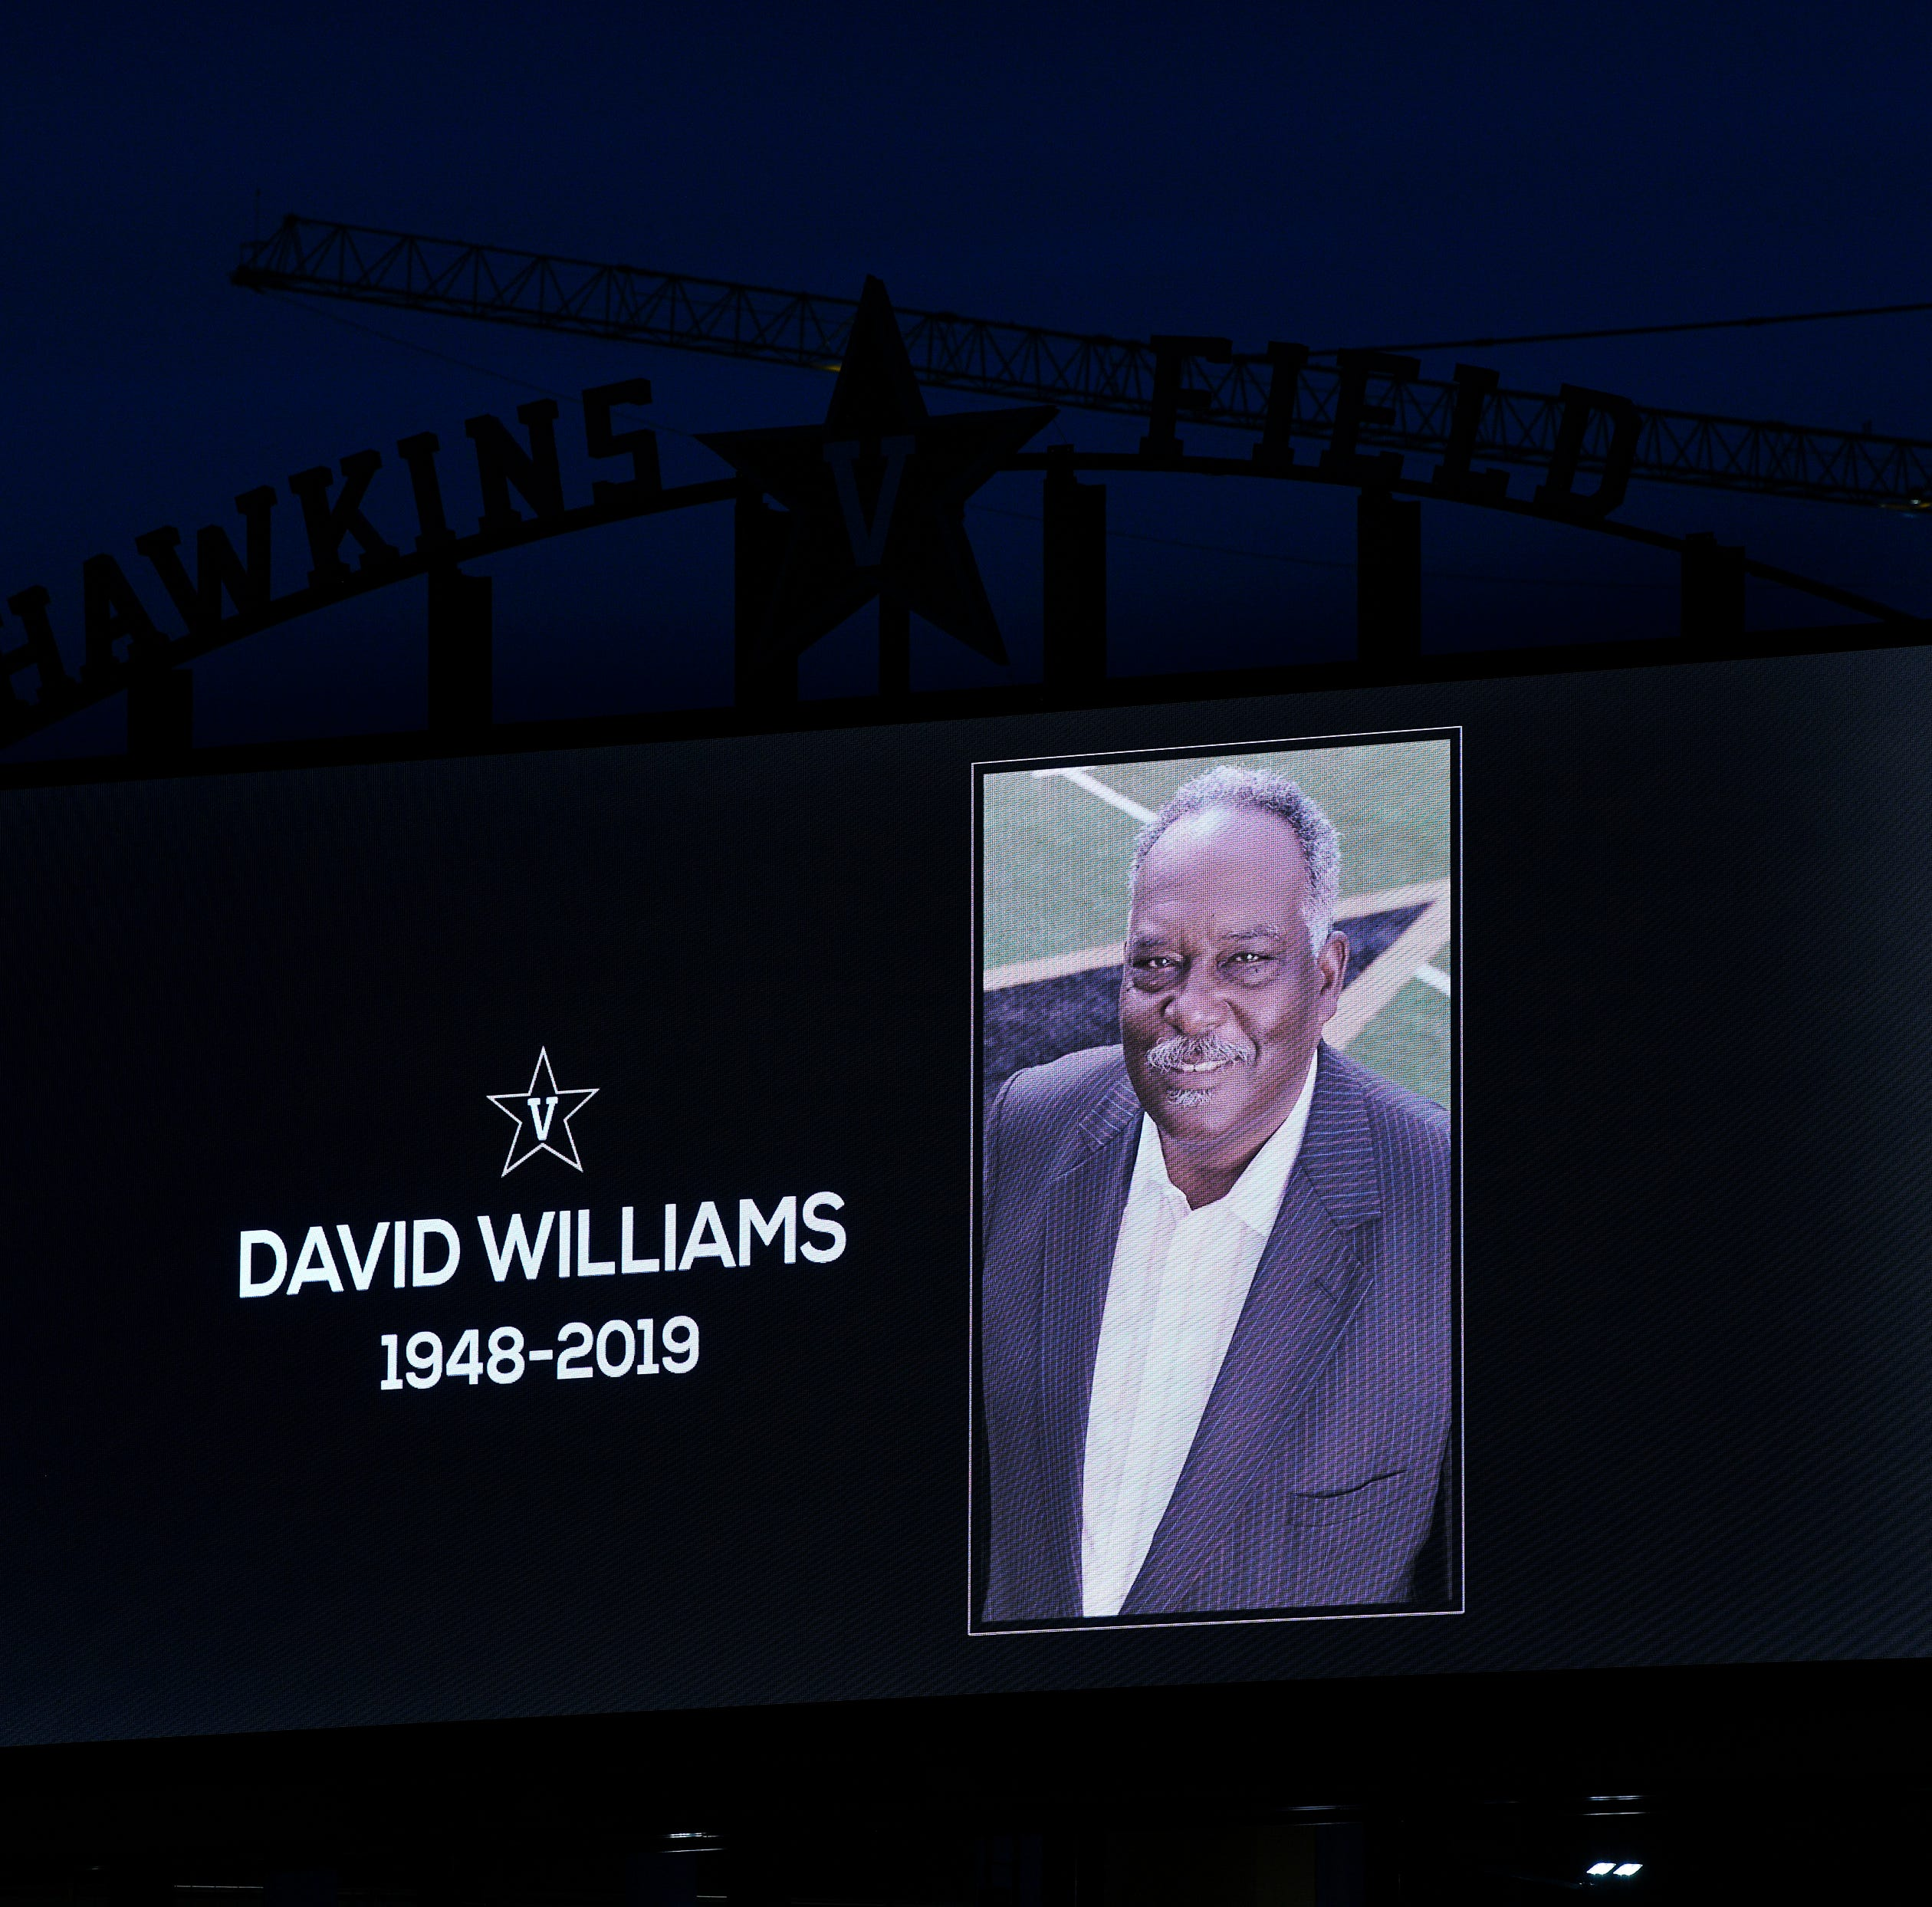 Remembering Vanderbilt University's David Williams: a coach, wise man and friend | Opinion